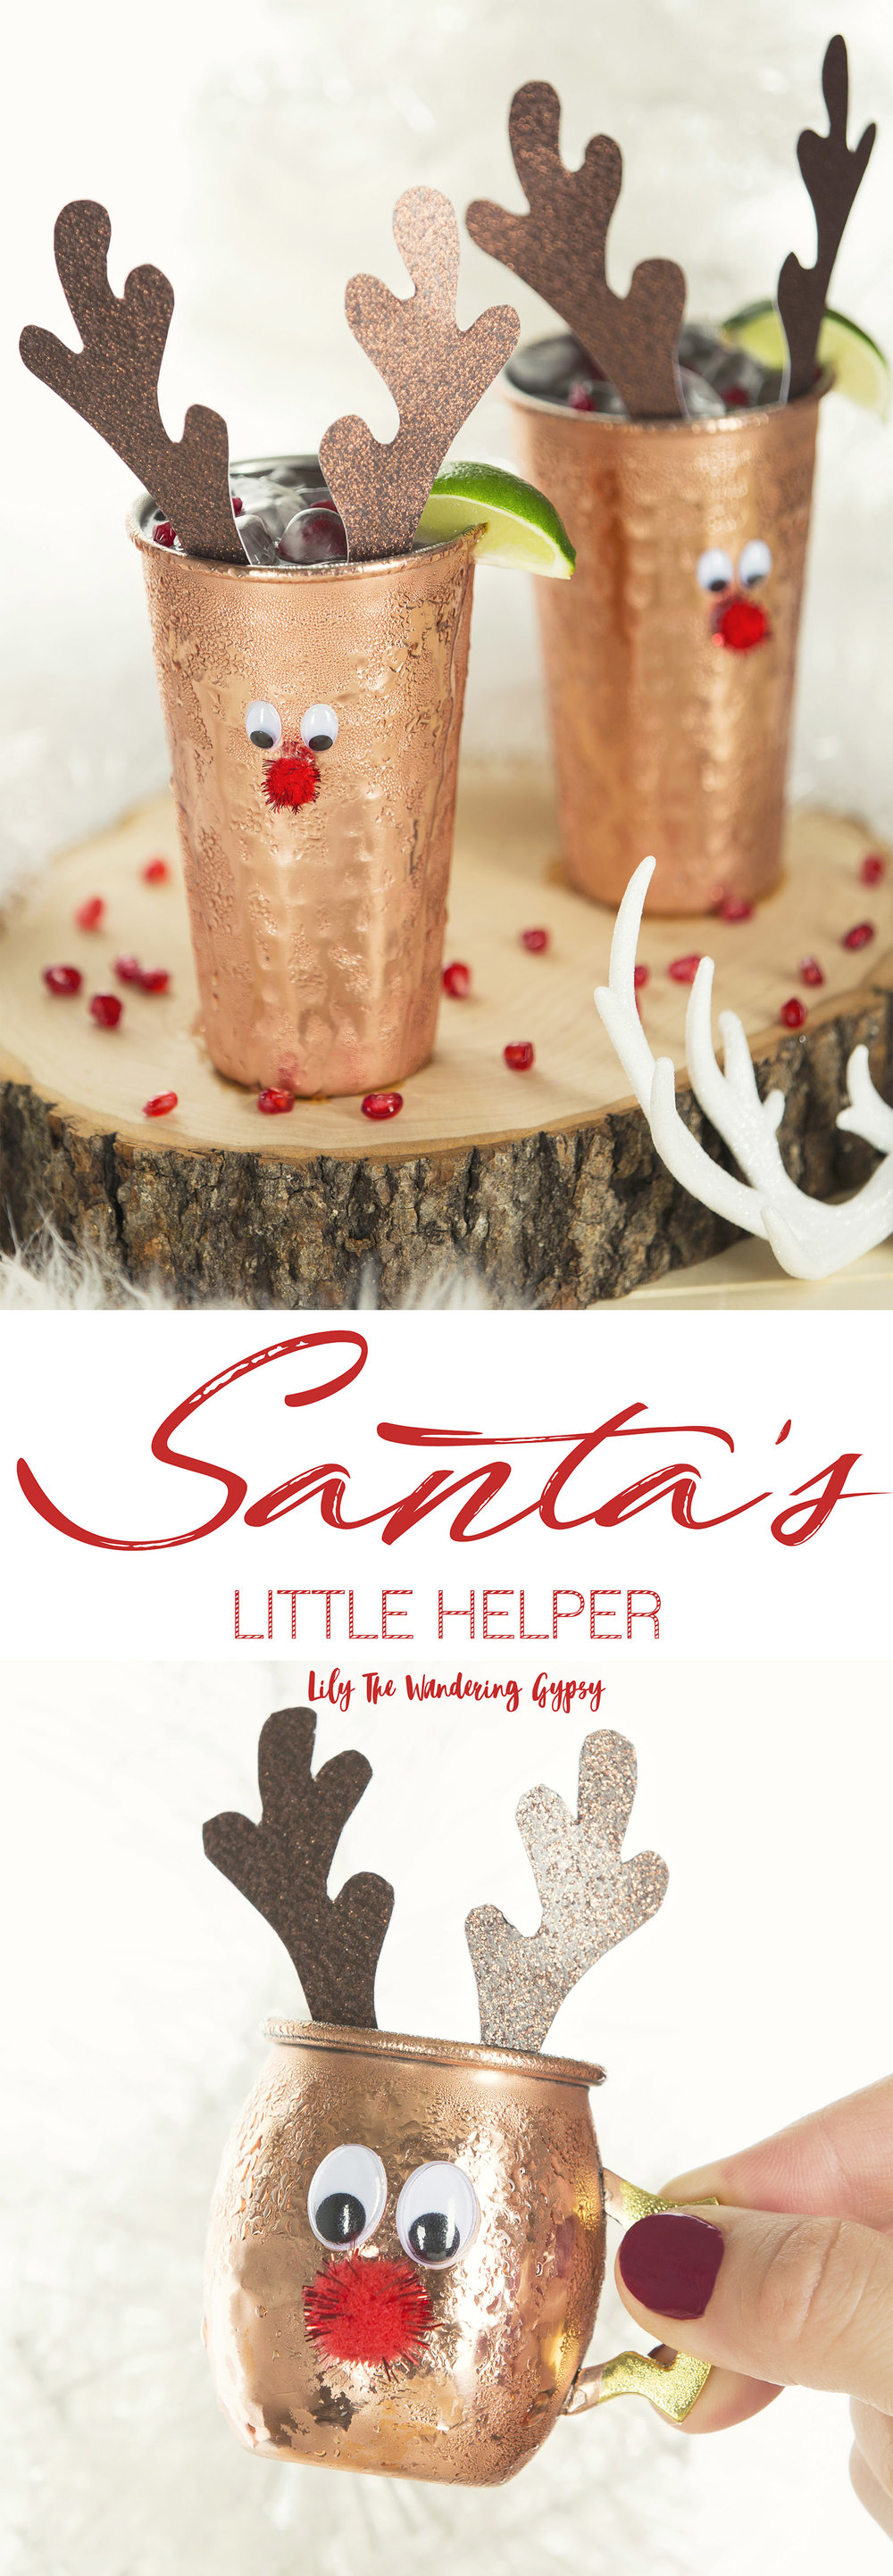 Santa's Little Helper Cocktail Recipe